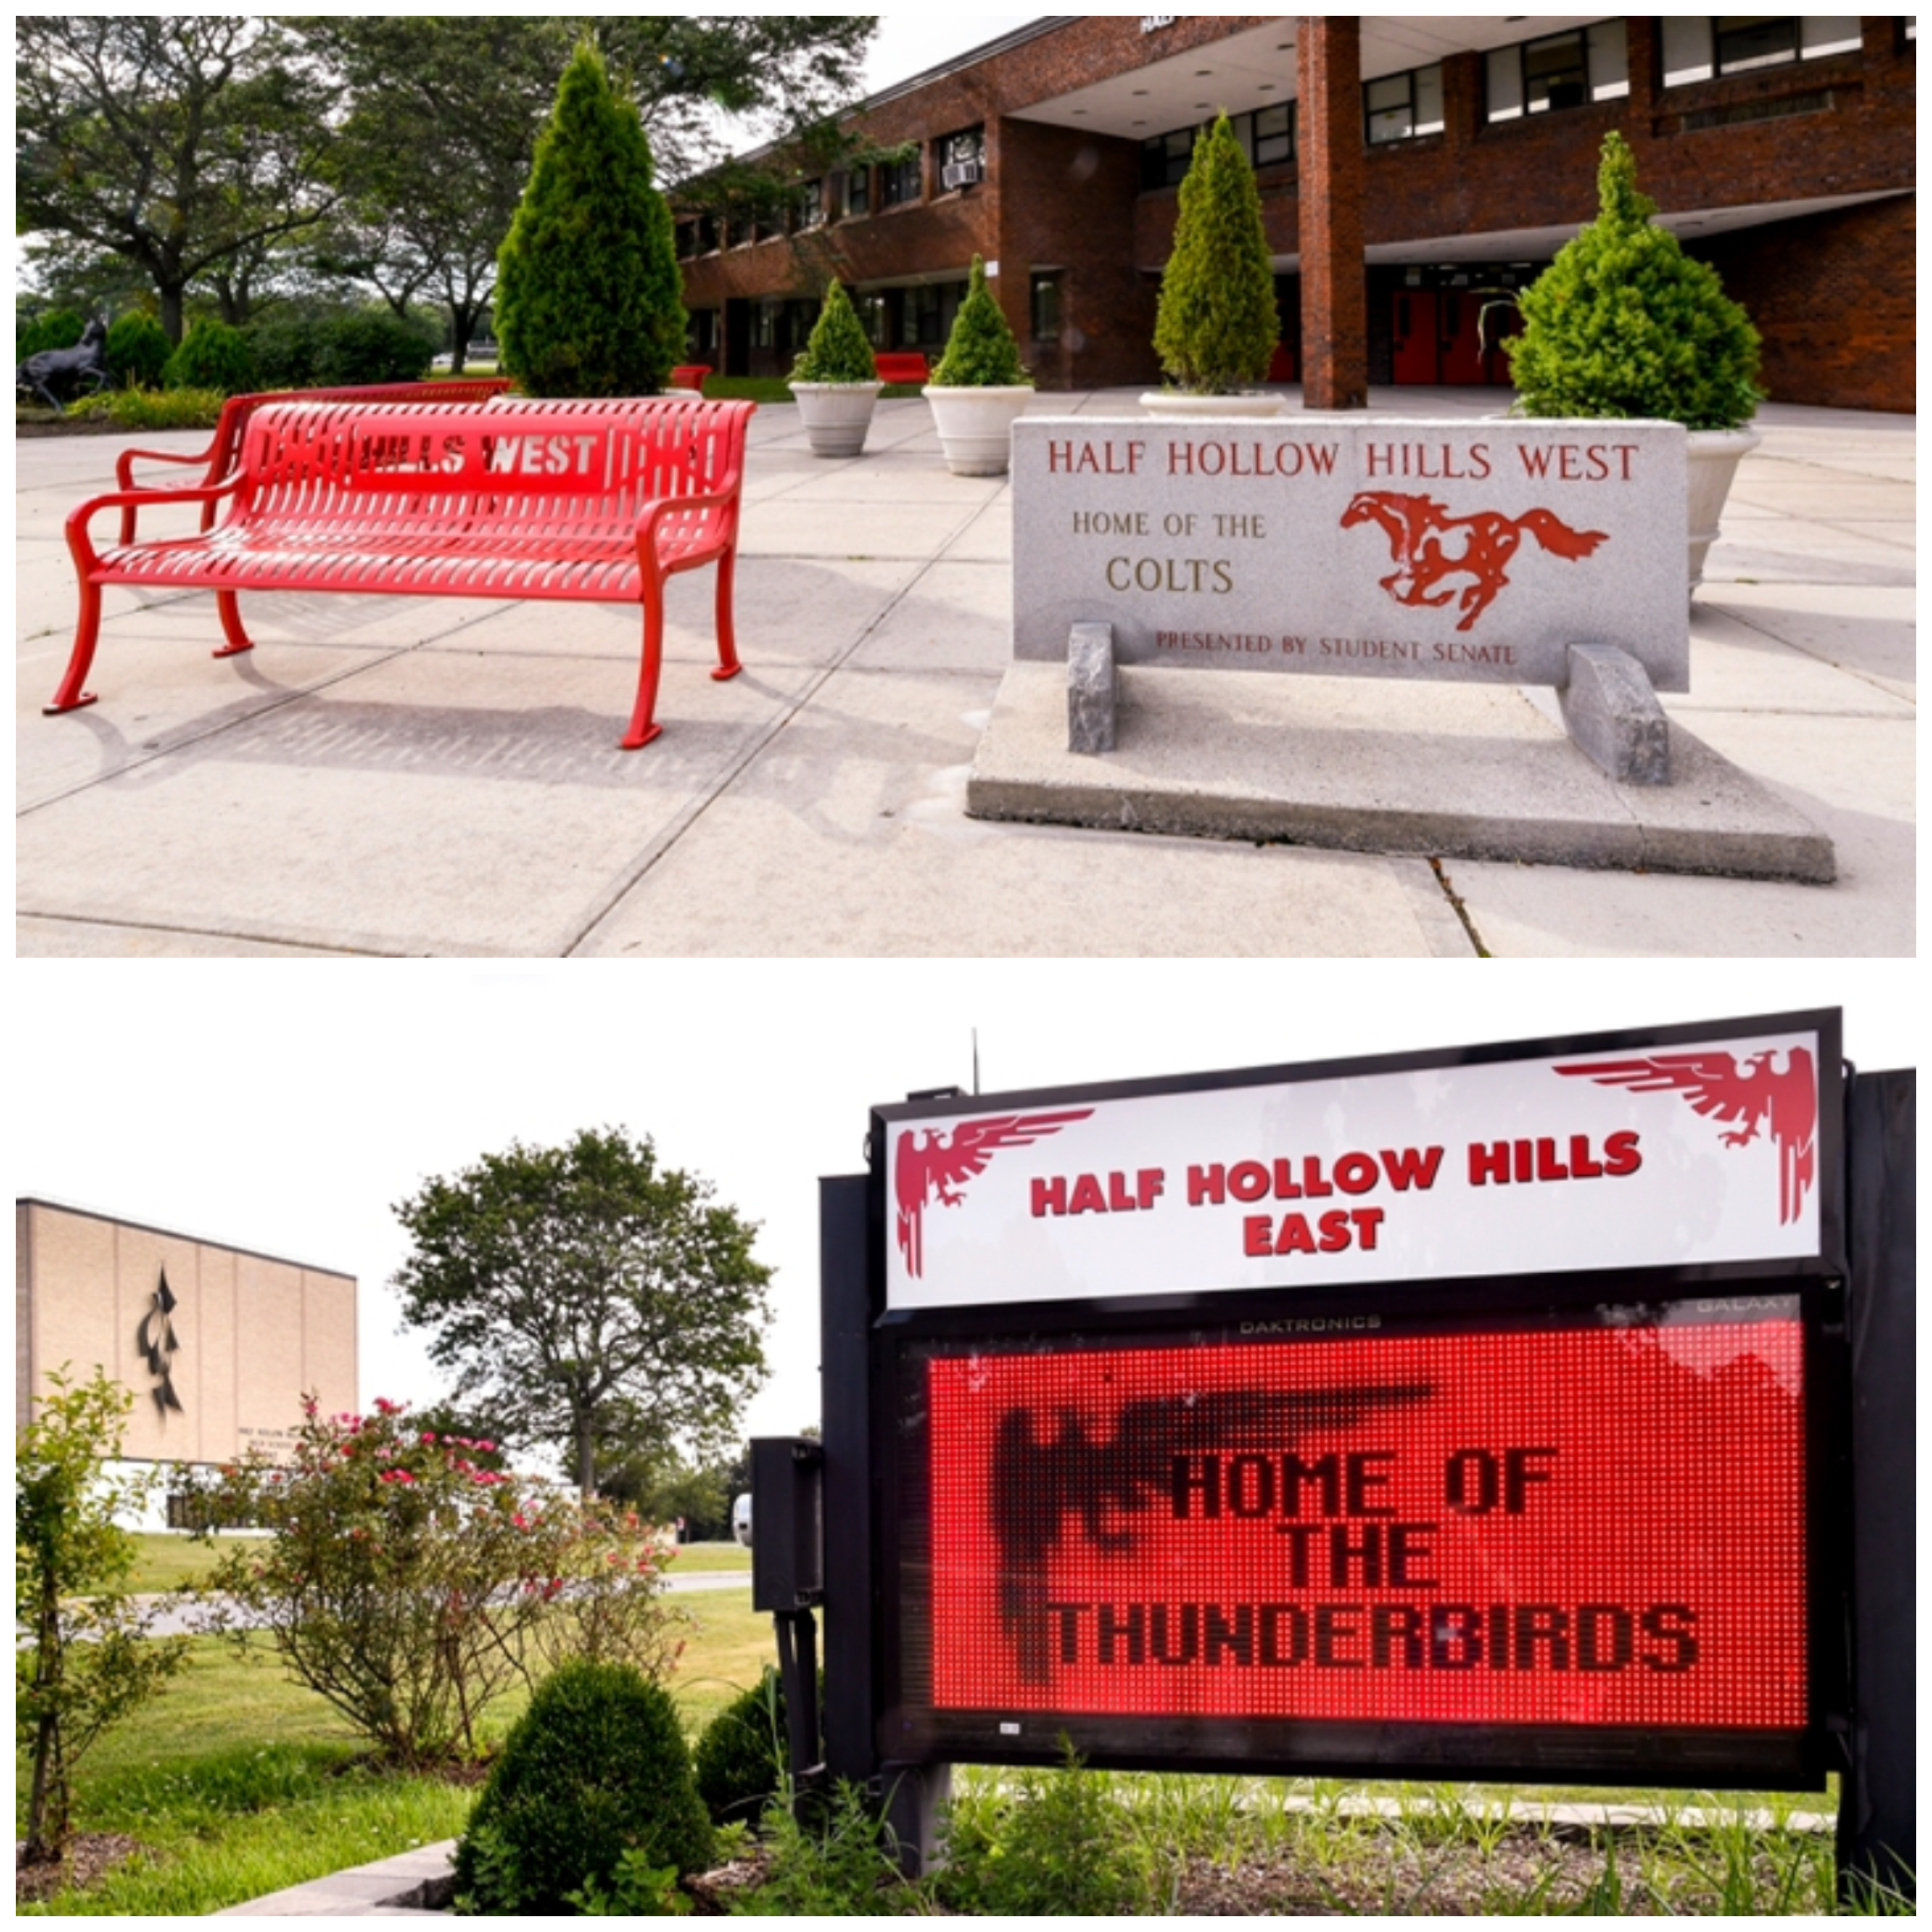 Hills West & East Ranked By Niche.com As The Top Two Public High Schools In Suffolk County